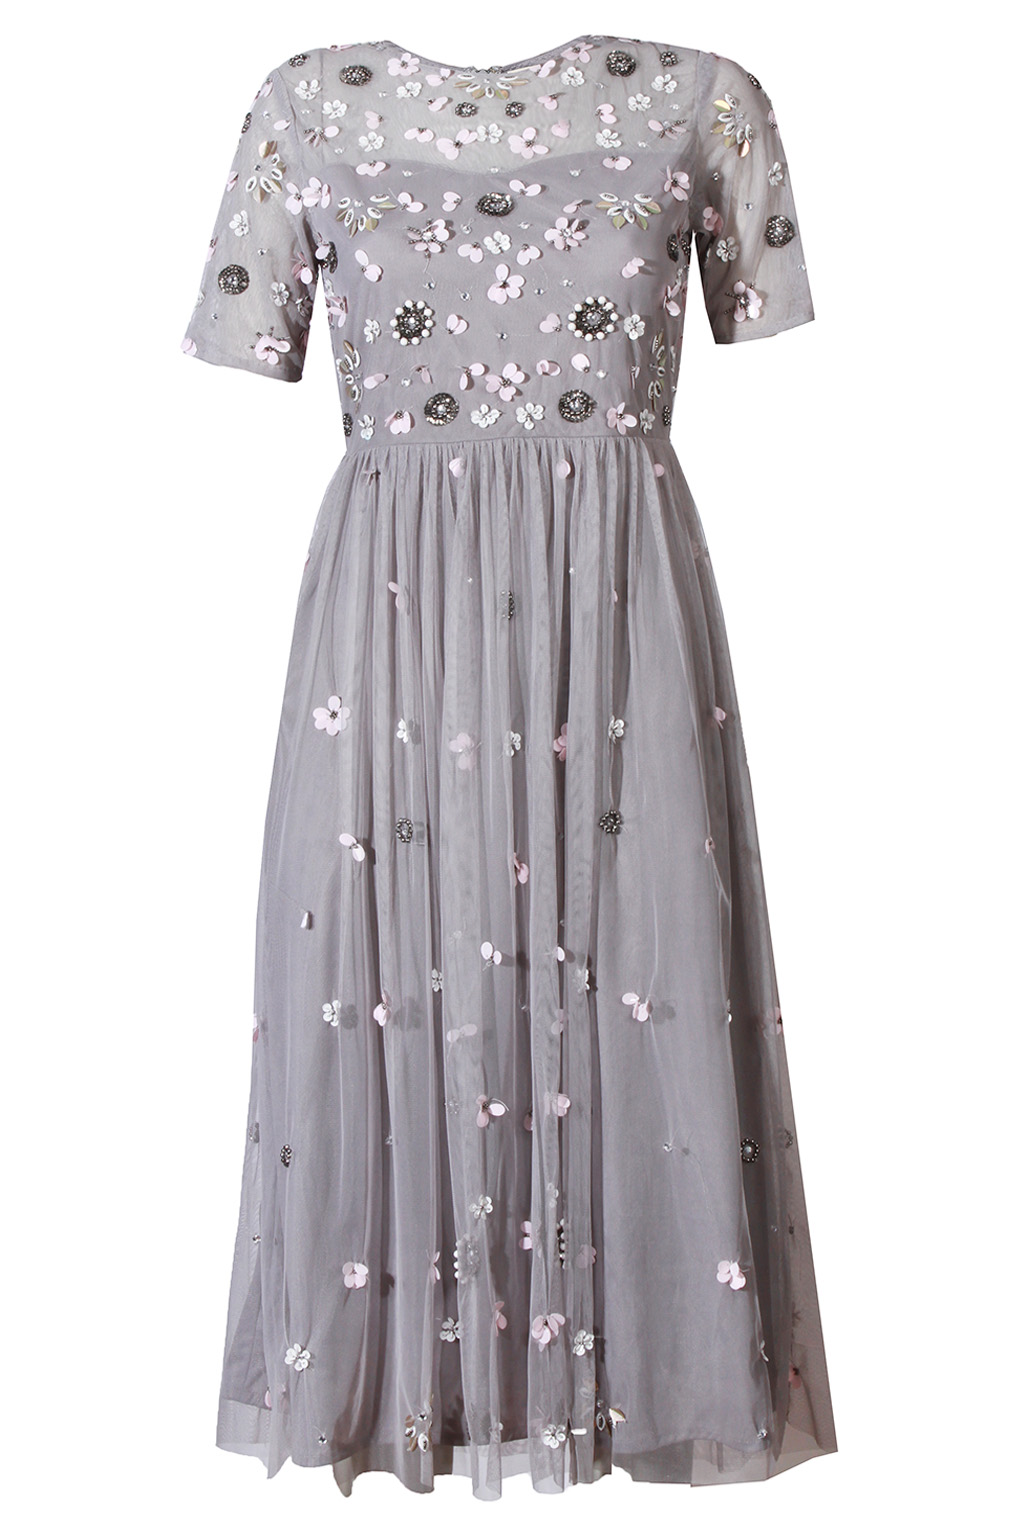 Image of Lace & Beads Baby Grey Dress